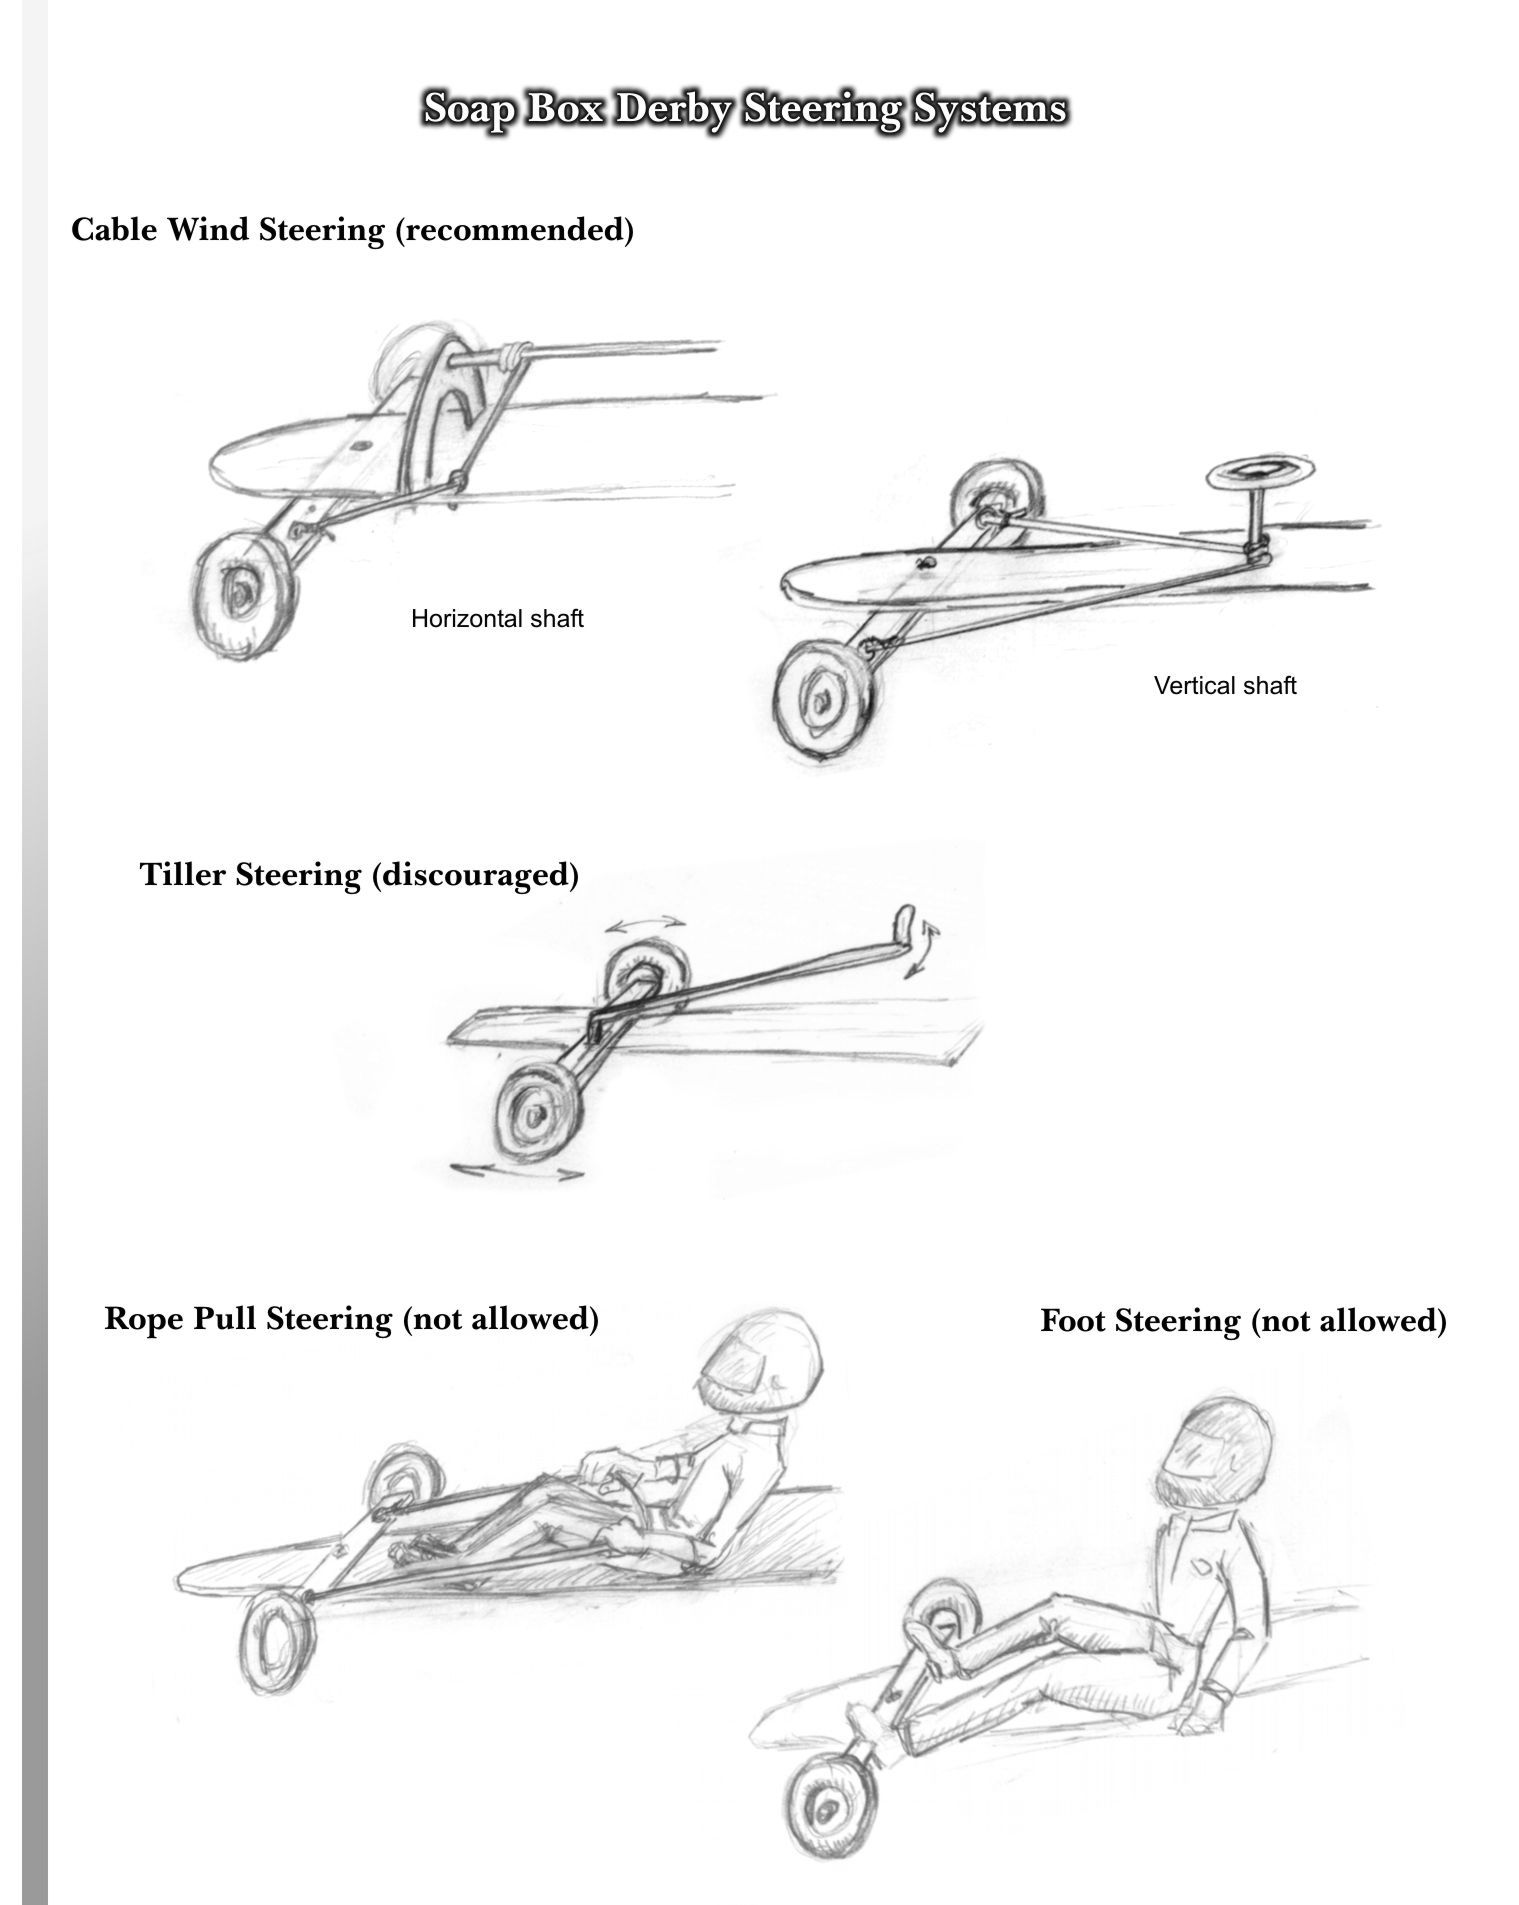 small resolution of types of steering for soap box derby cars soapbox derby ideas wiring diagram 1955 aston martin db3s ft boxcar free download wiring